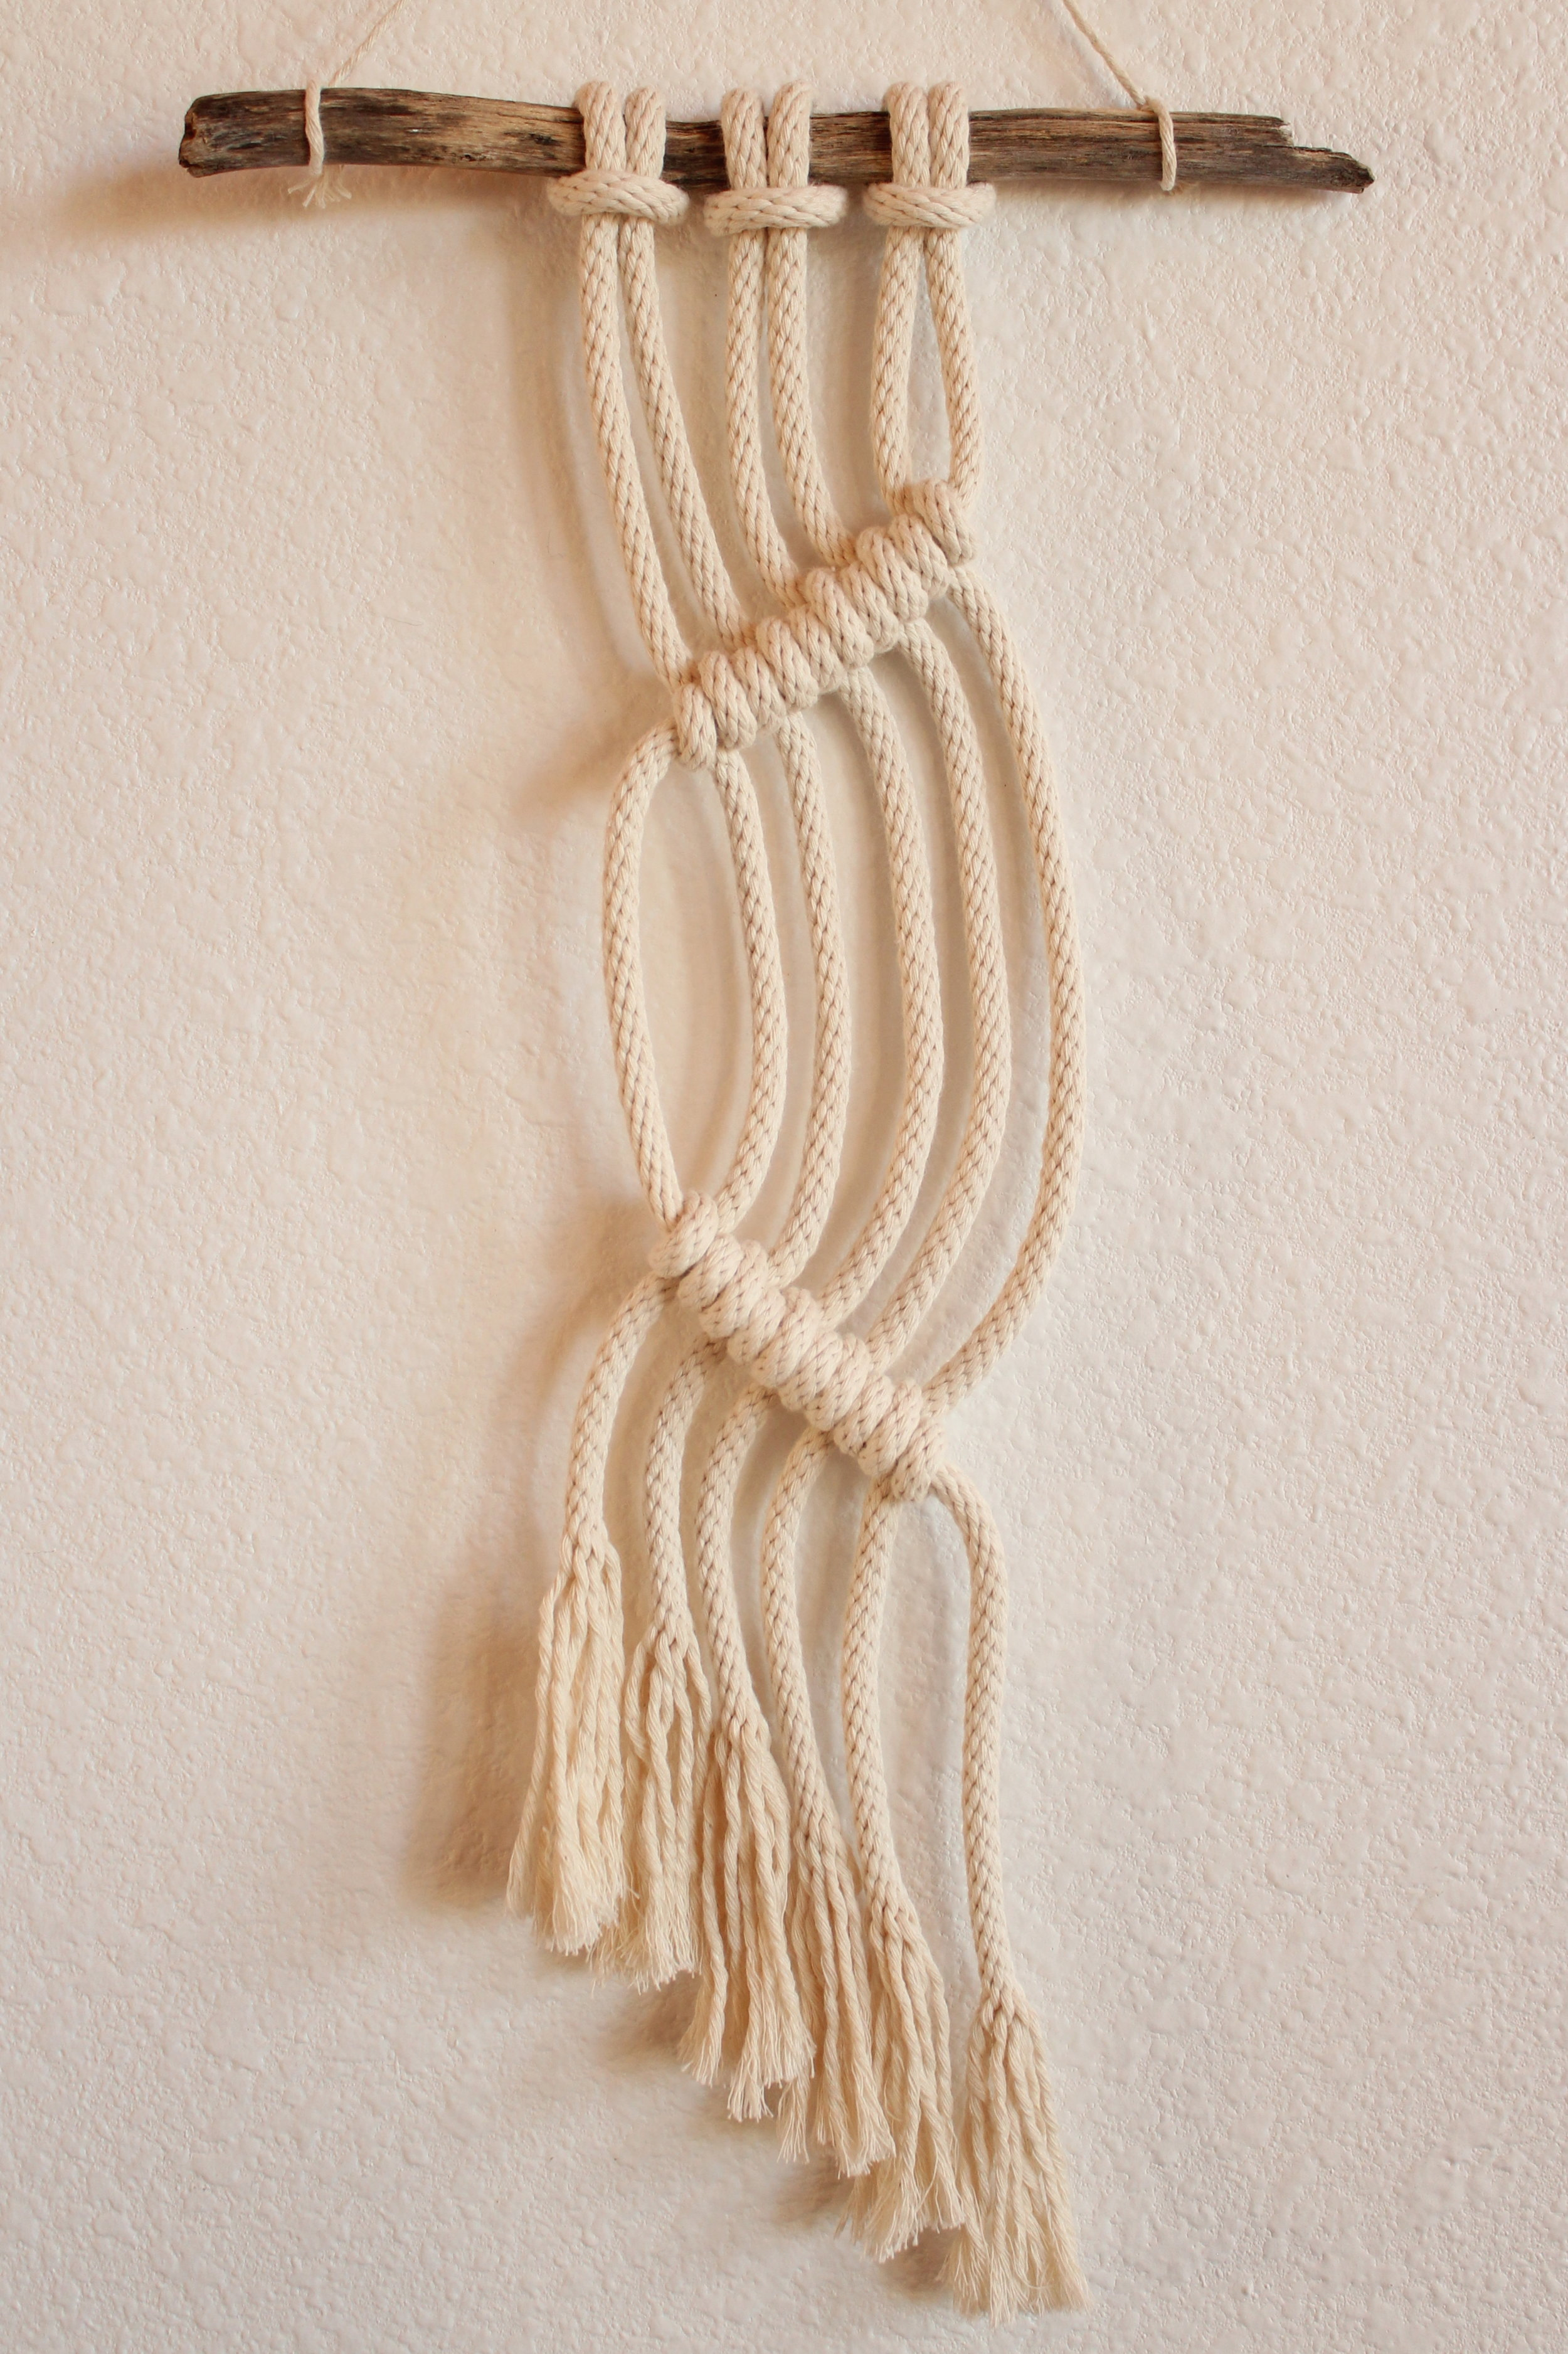 THIRSTY GROUND MACRAME WALL HANGING